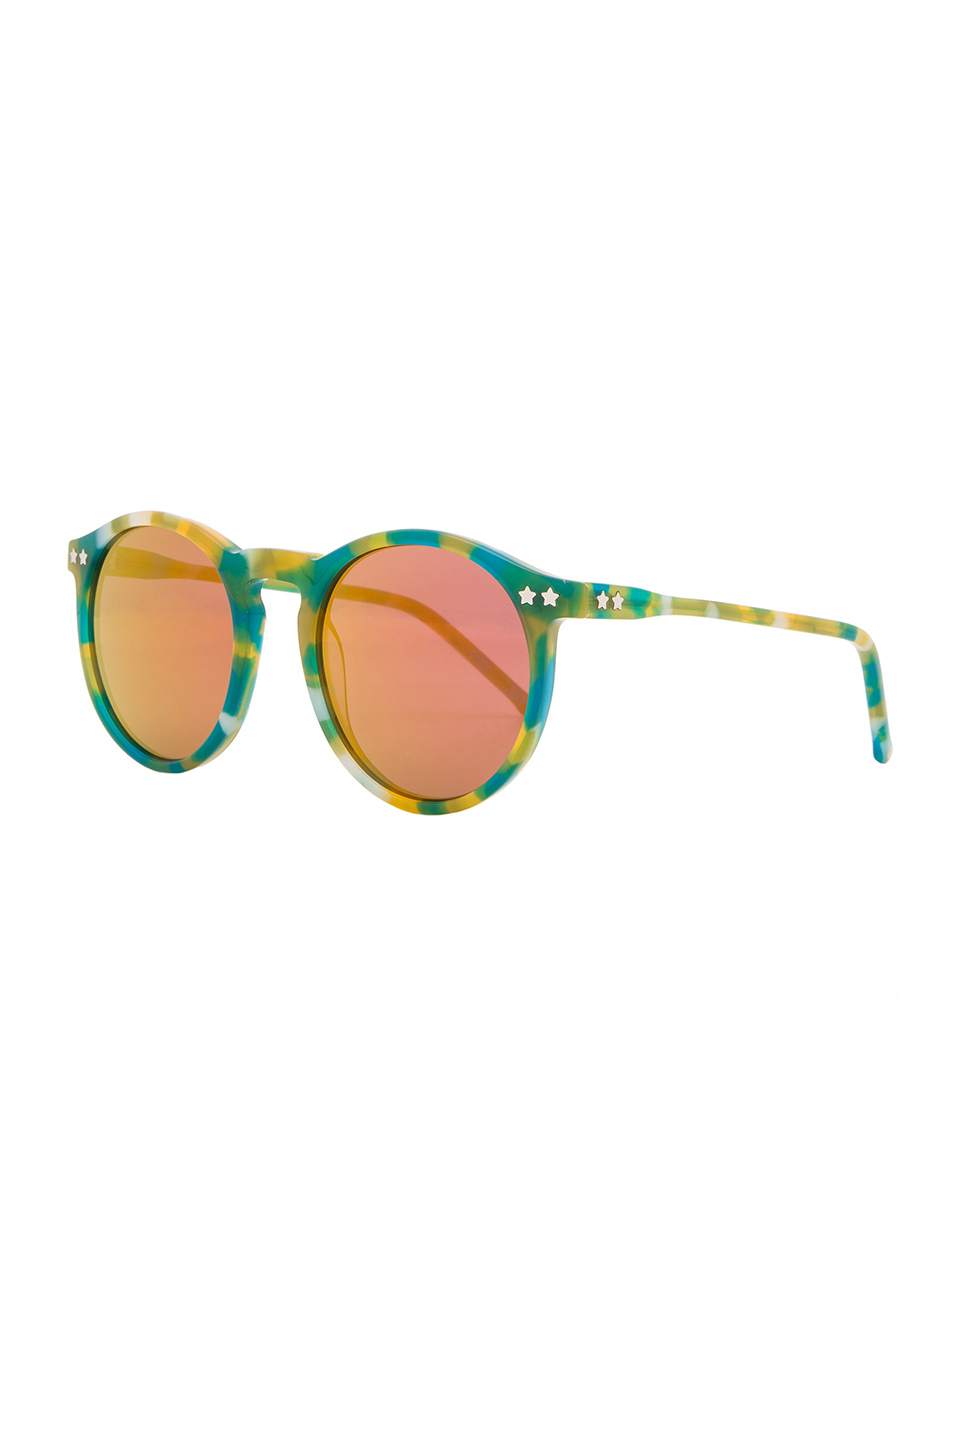 04ba24bda1 Lyst - Wildfox Steff Sunglasses in Orange